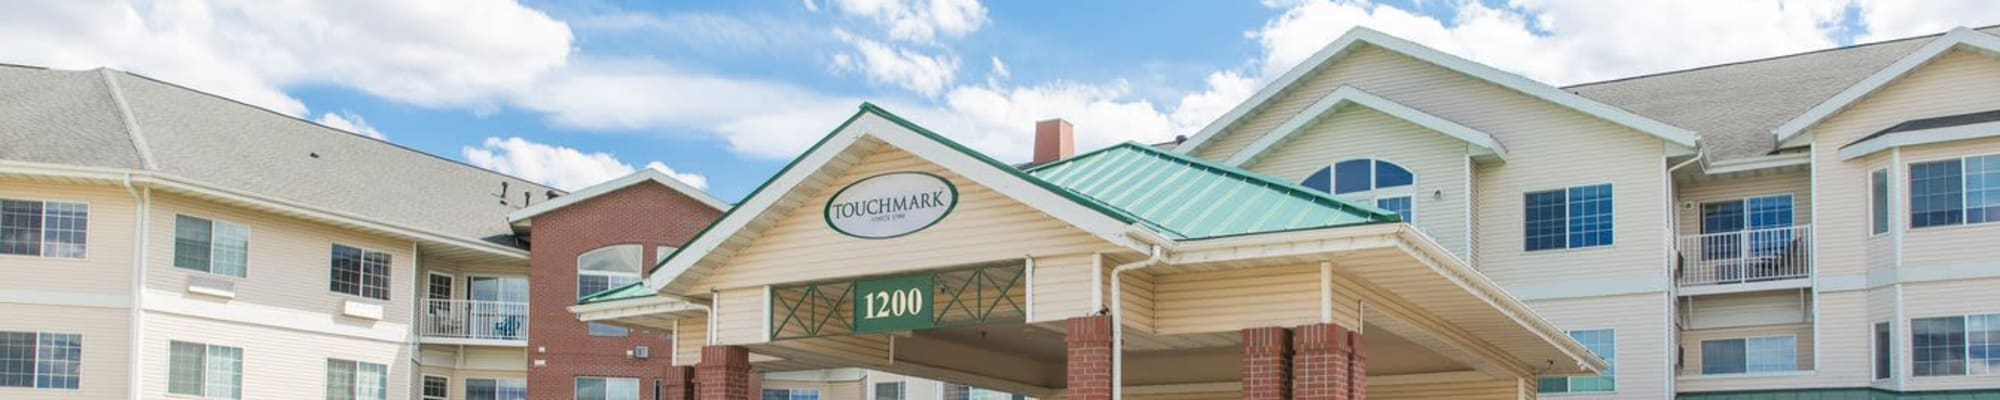 Privacy policy for Touchmark at Harwood Groves in Fargo, North Dakota